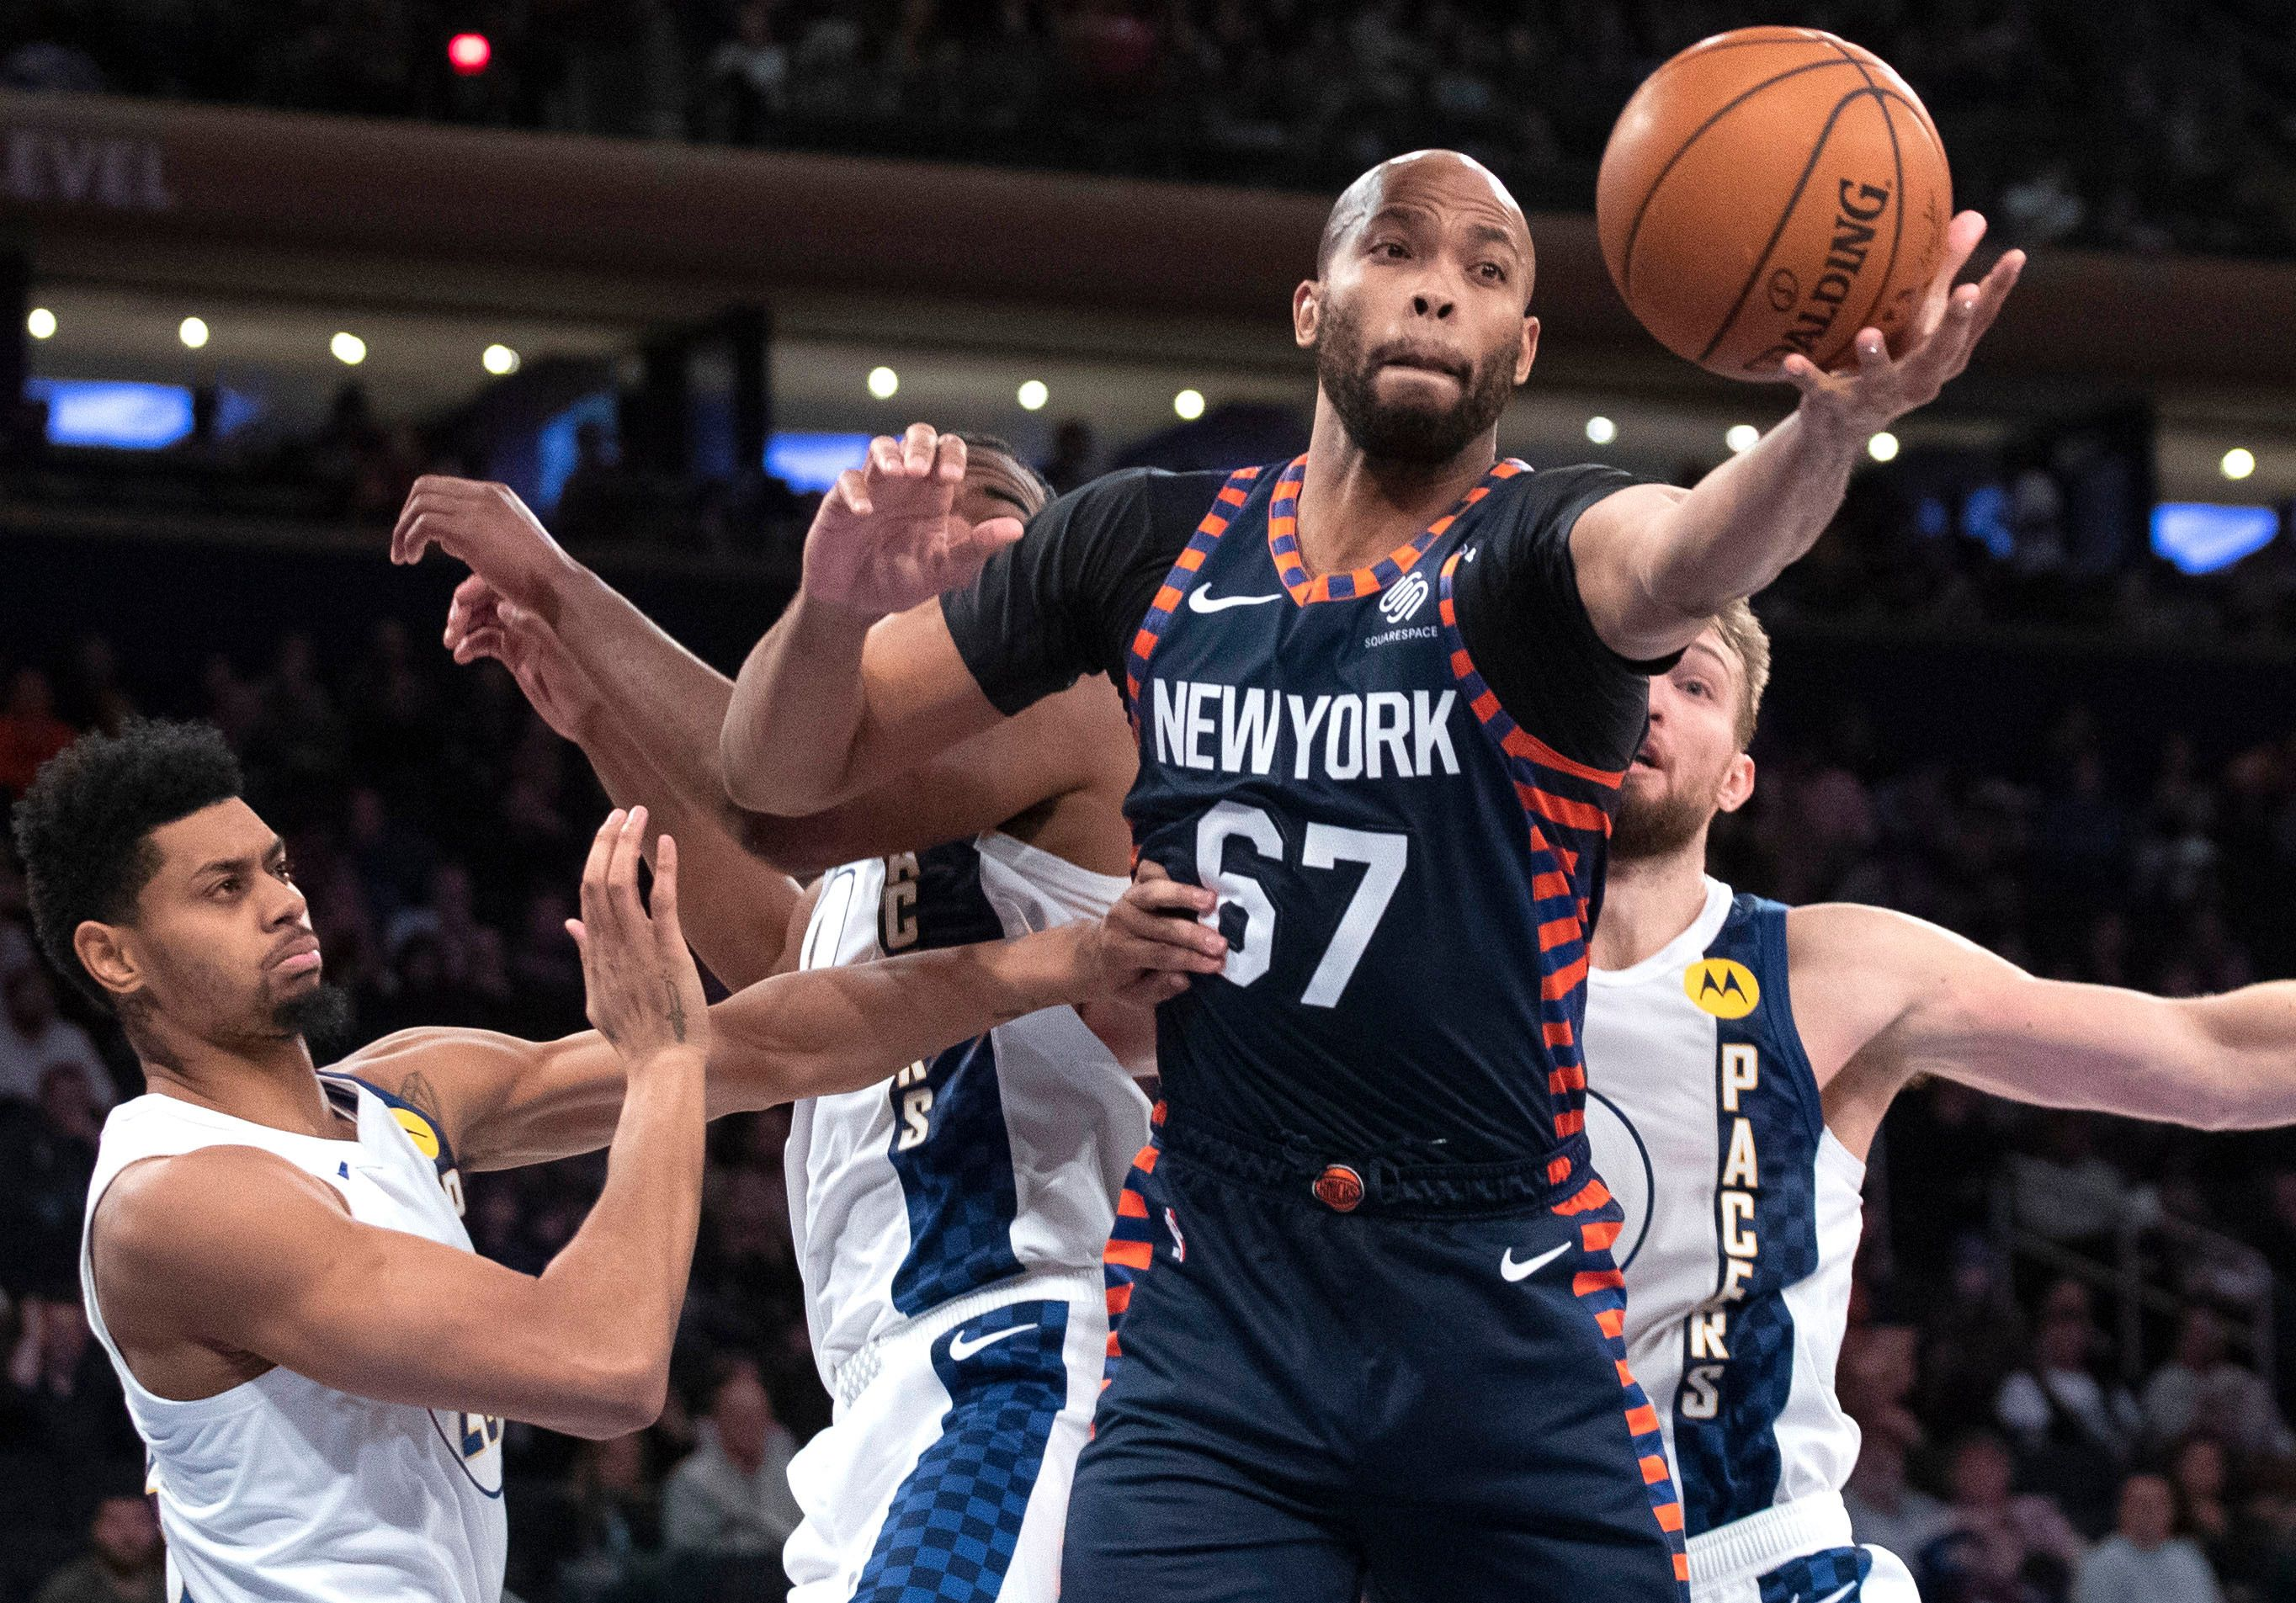 Knicks players not allowed to say why David Fizdale was